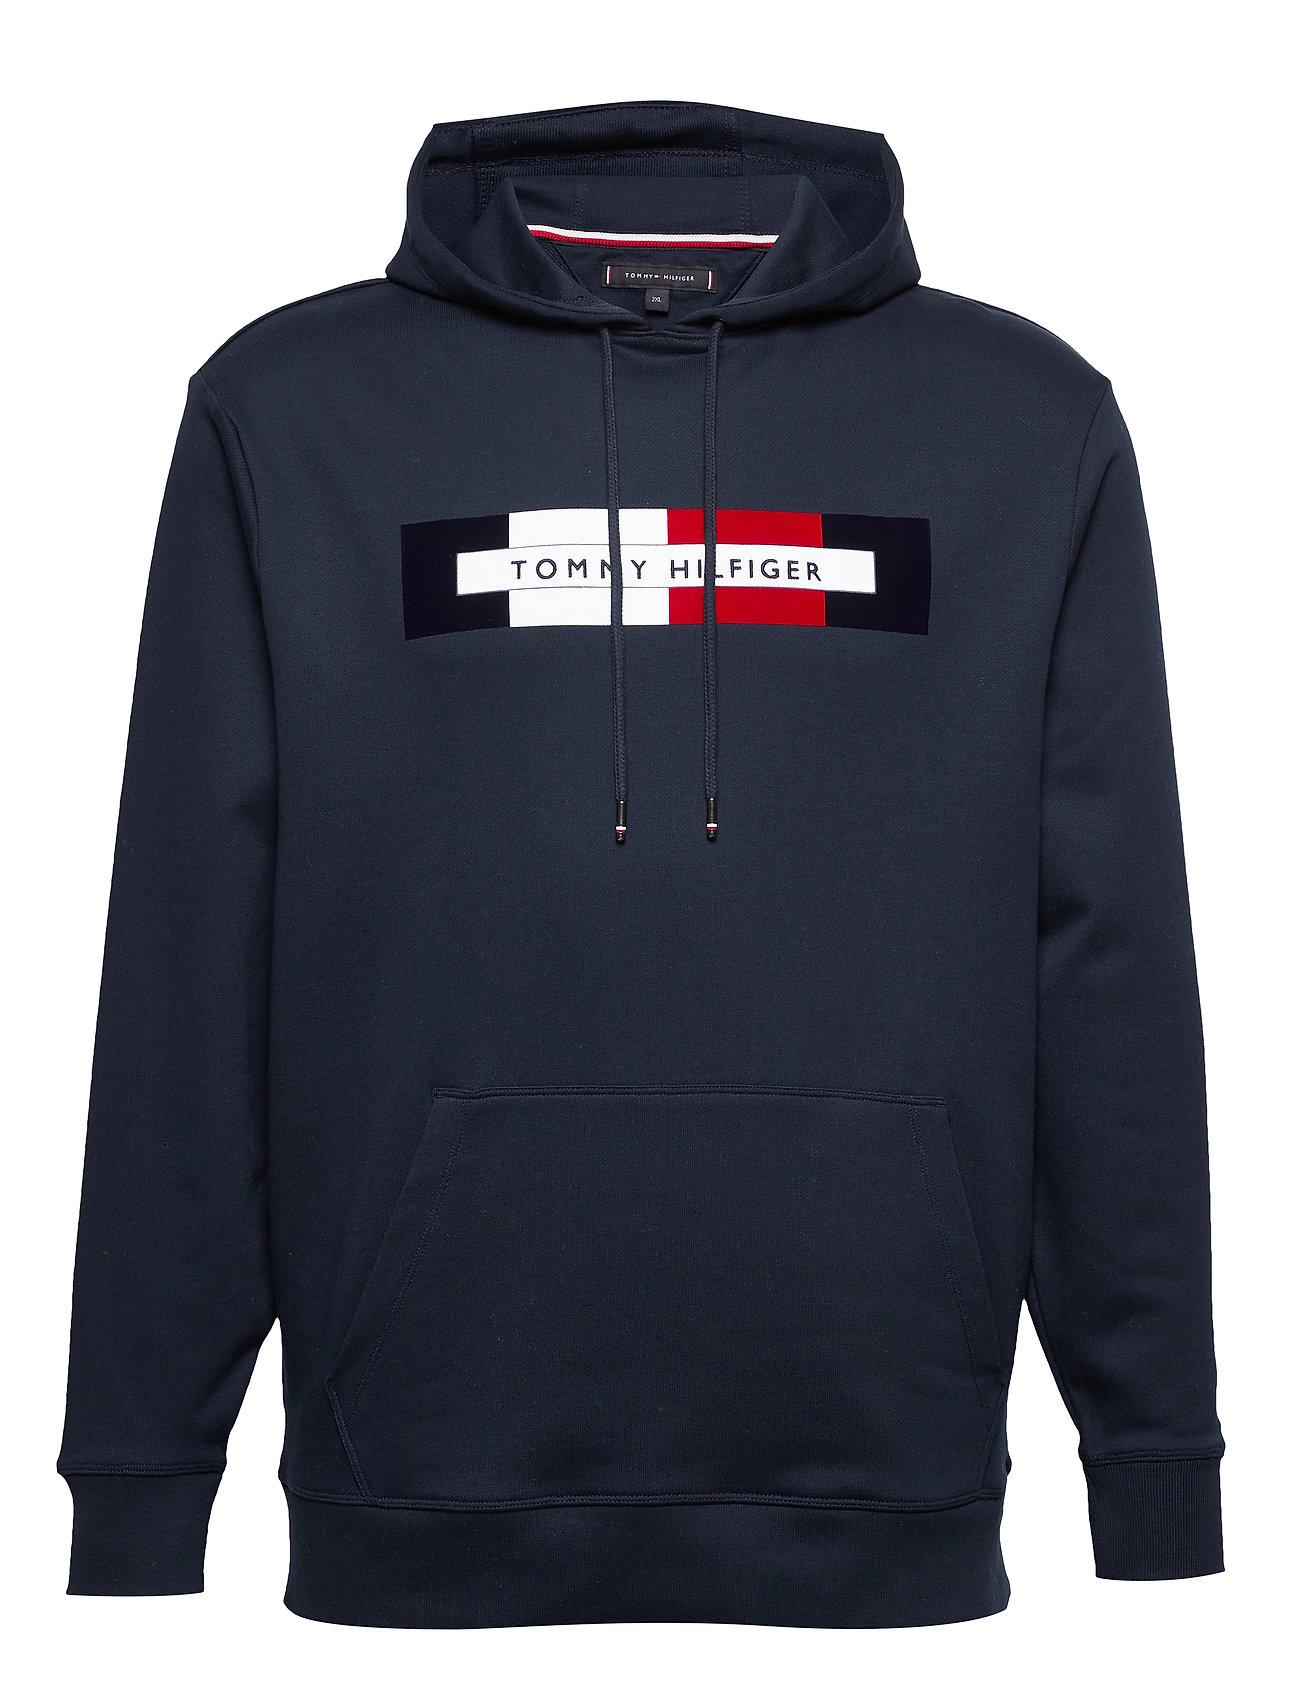 Tommy Hilfiger Big & Tall BT-HILFIGER LOGO HOODY-B - SKY CAPTAIN